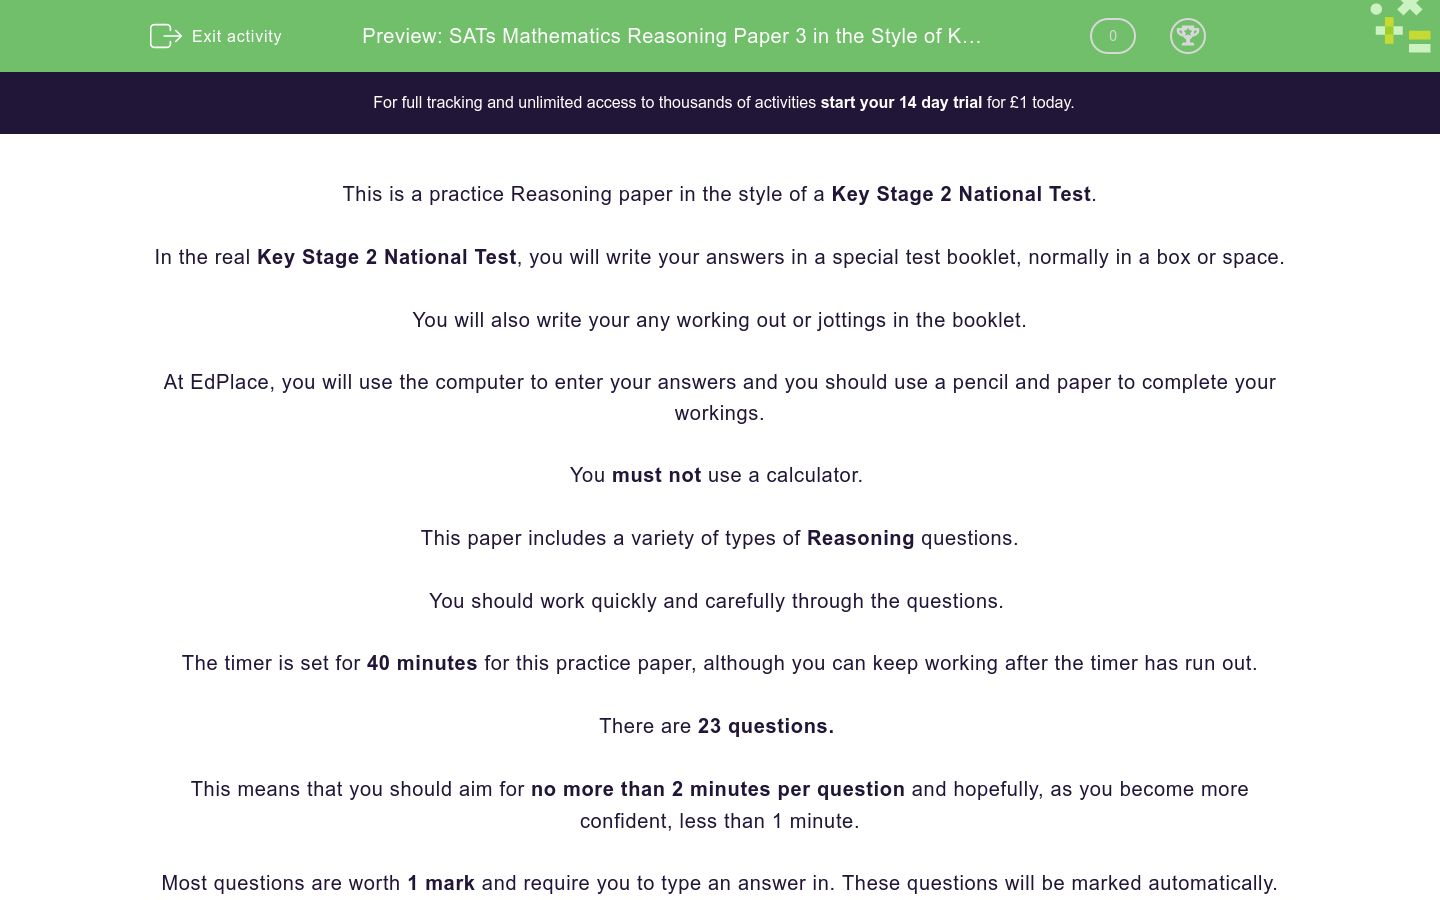 'SATs Mathematics Reasoning Paper 3 in the Style of Key Stage 2 National Tests (Practice 1)' worksheet